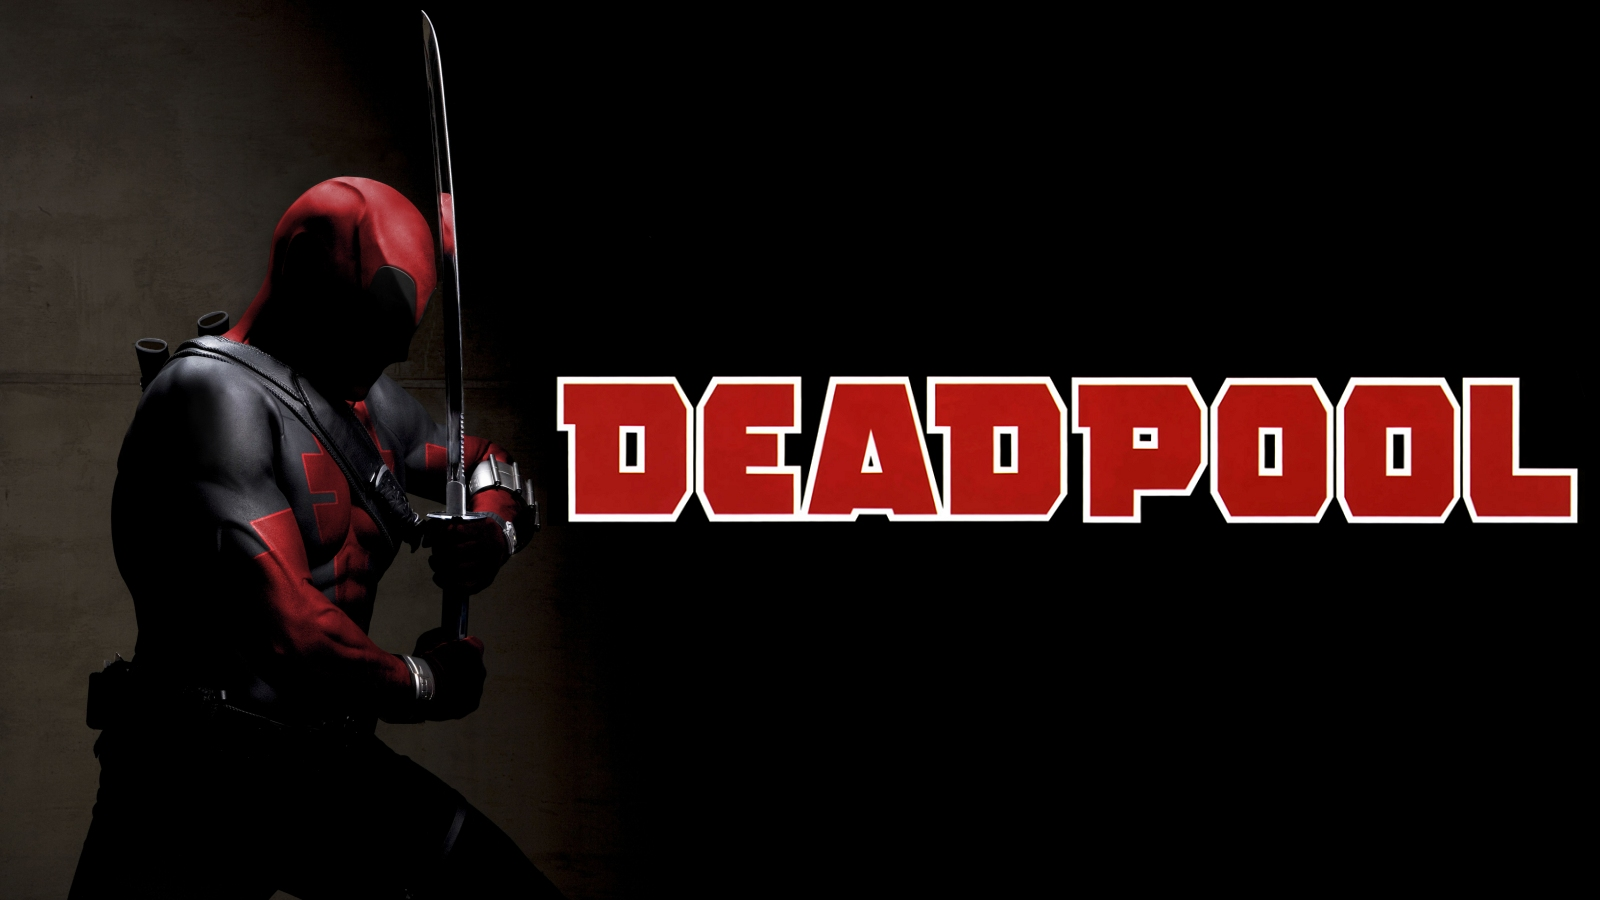 Fumetti - Deadpool  - Superman  - Bleach Sfondi